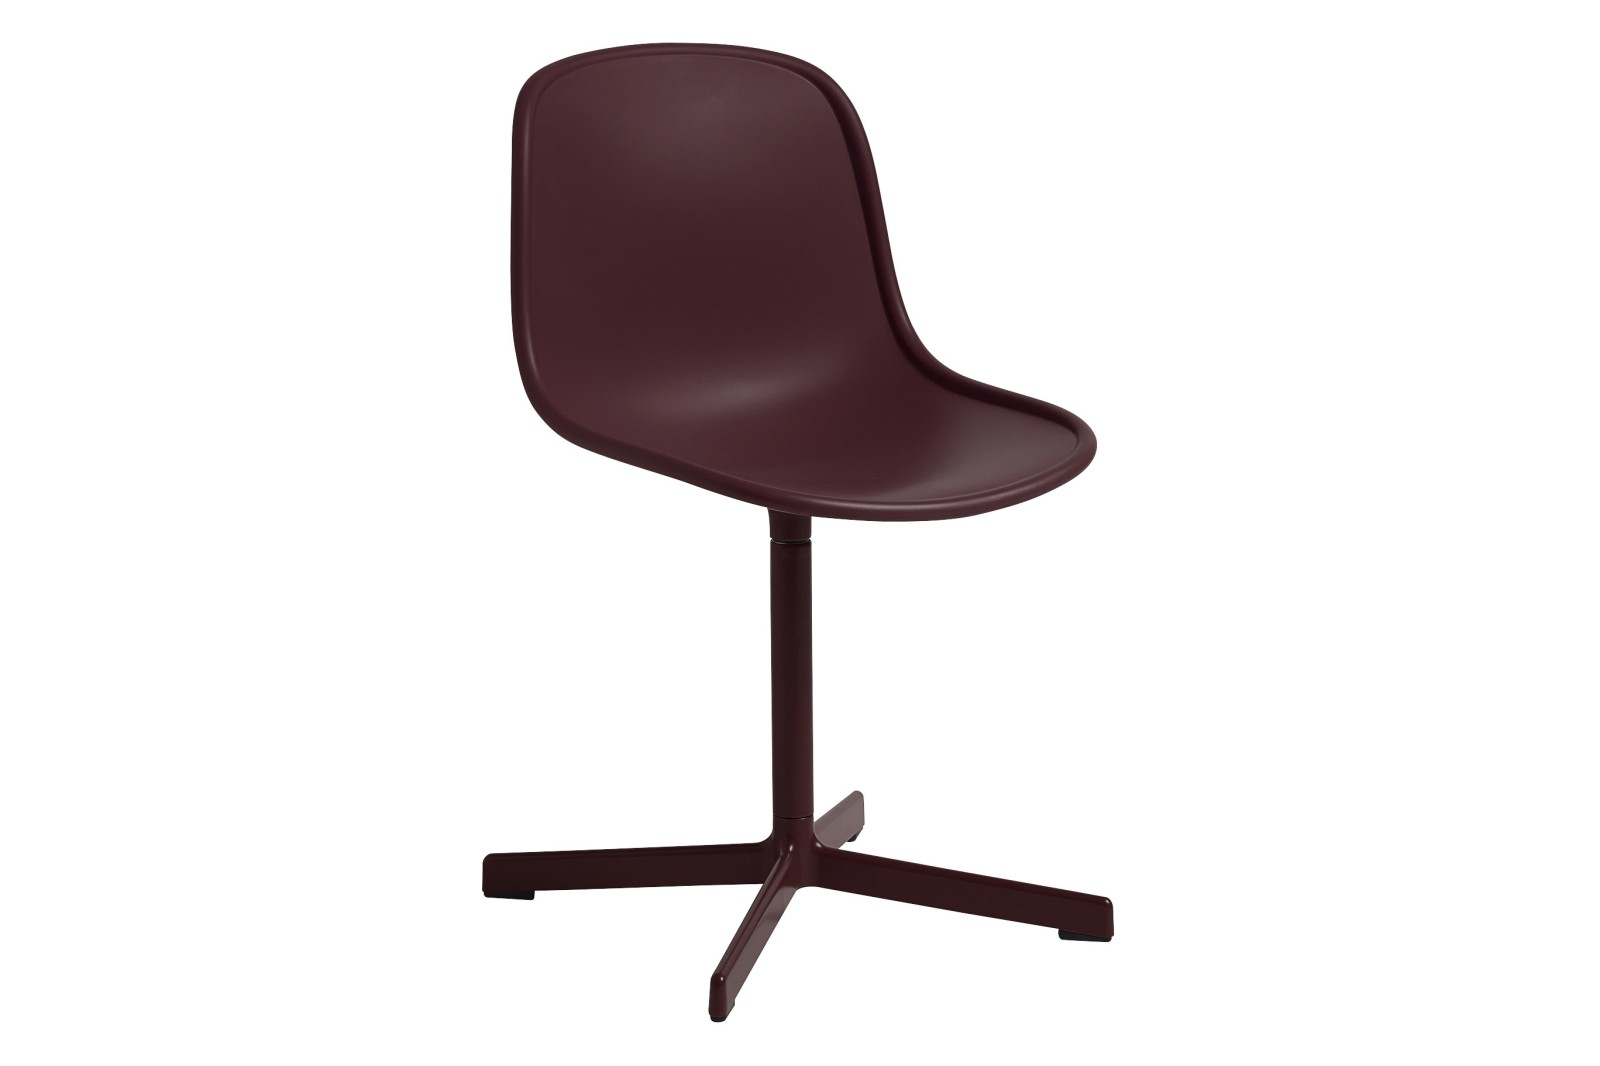 Neu 10 Meeting Chair Plastic Bordeaux / Metal Bordeaux